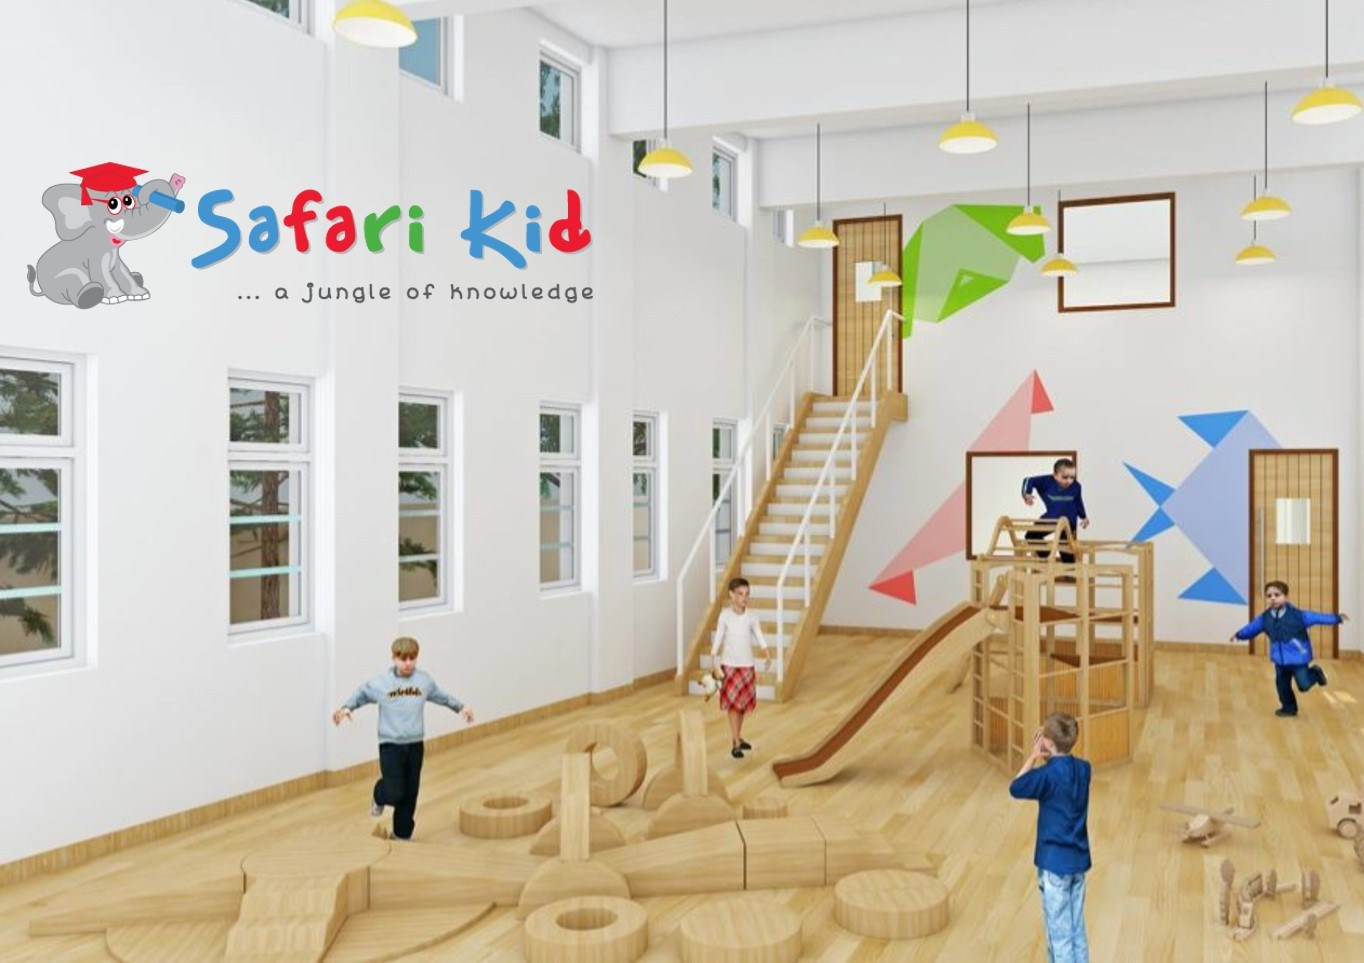 Safari Kid: A new approach to schooling